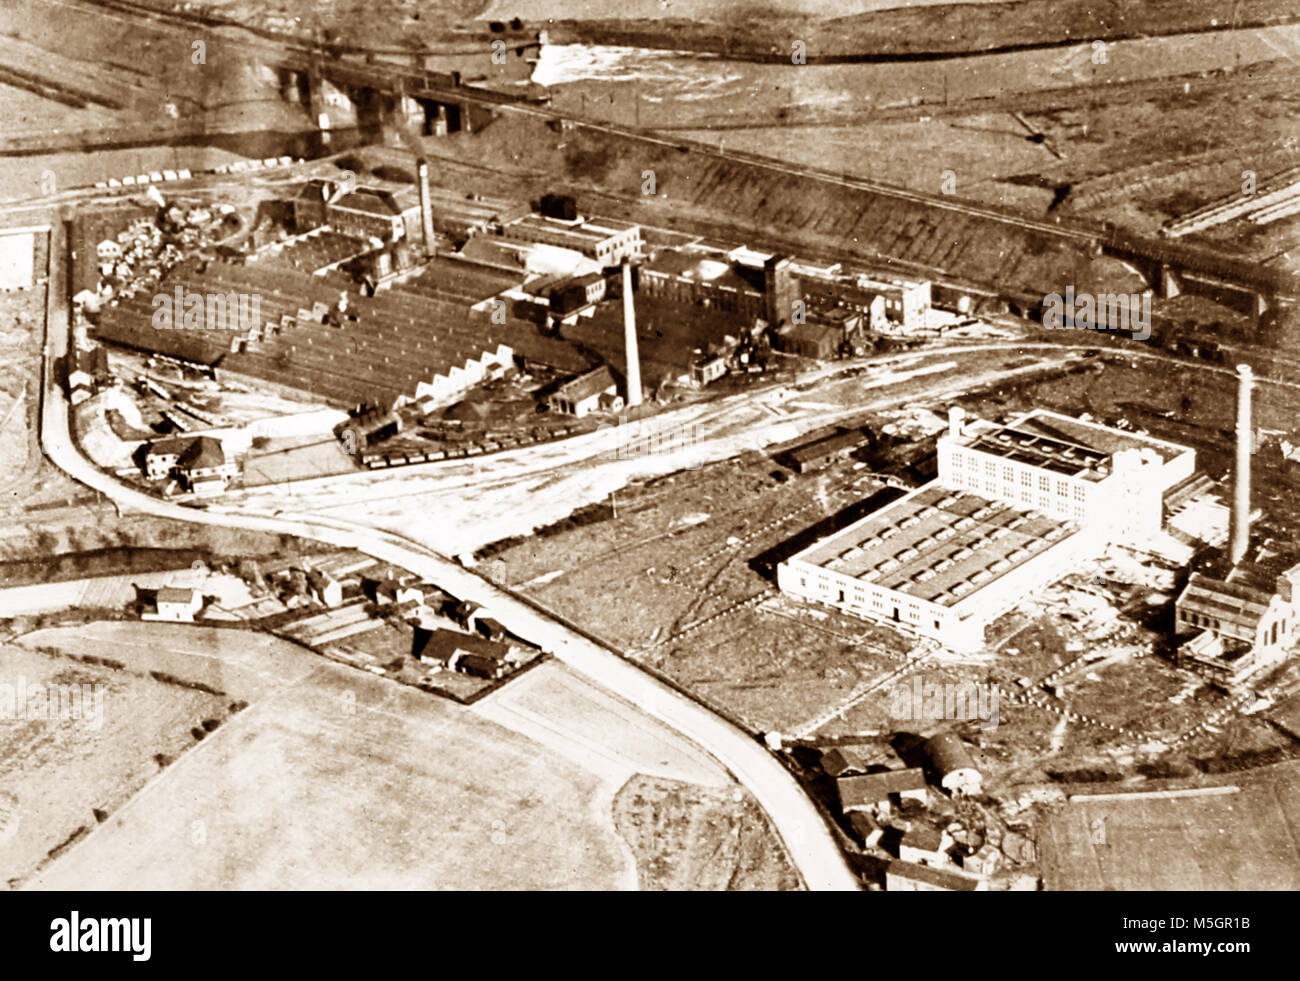 CWS Margarine Factory, Irlam, Manchester, probably 1920s - Stock Image